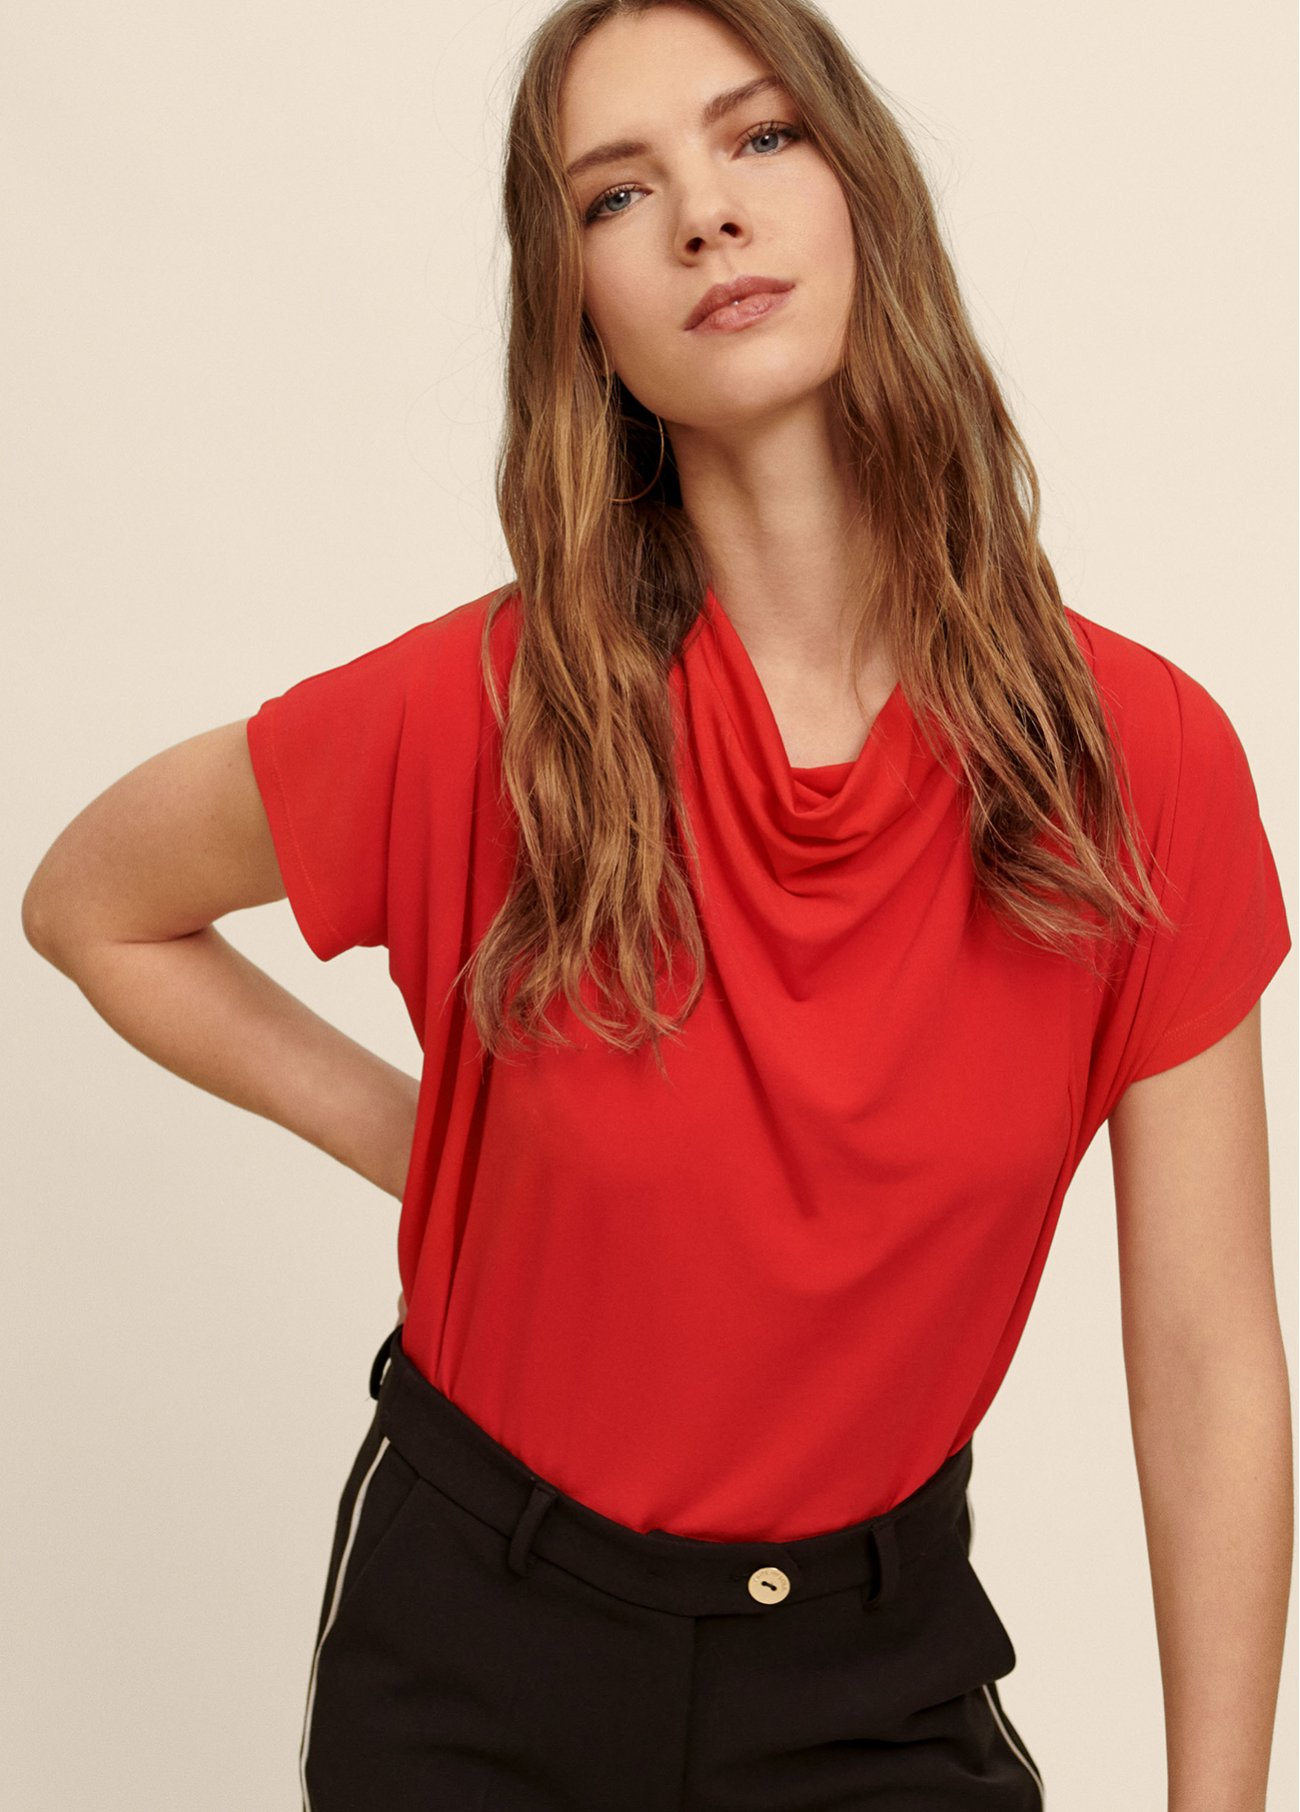 Flowing T-shirt with a loose-fitting hig